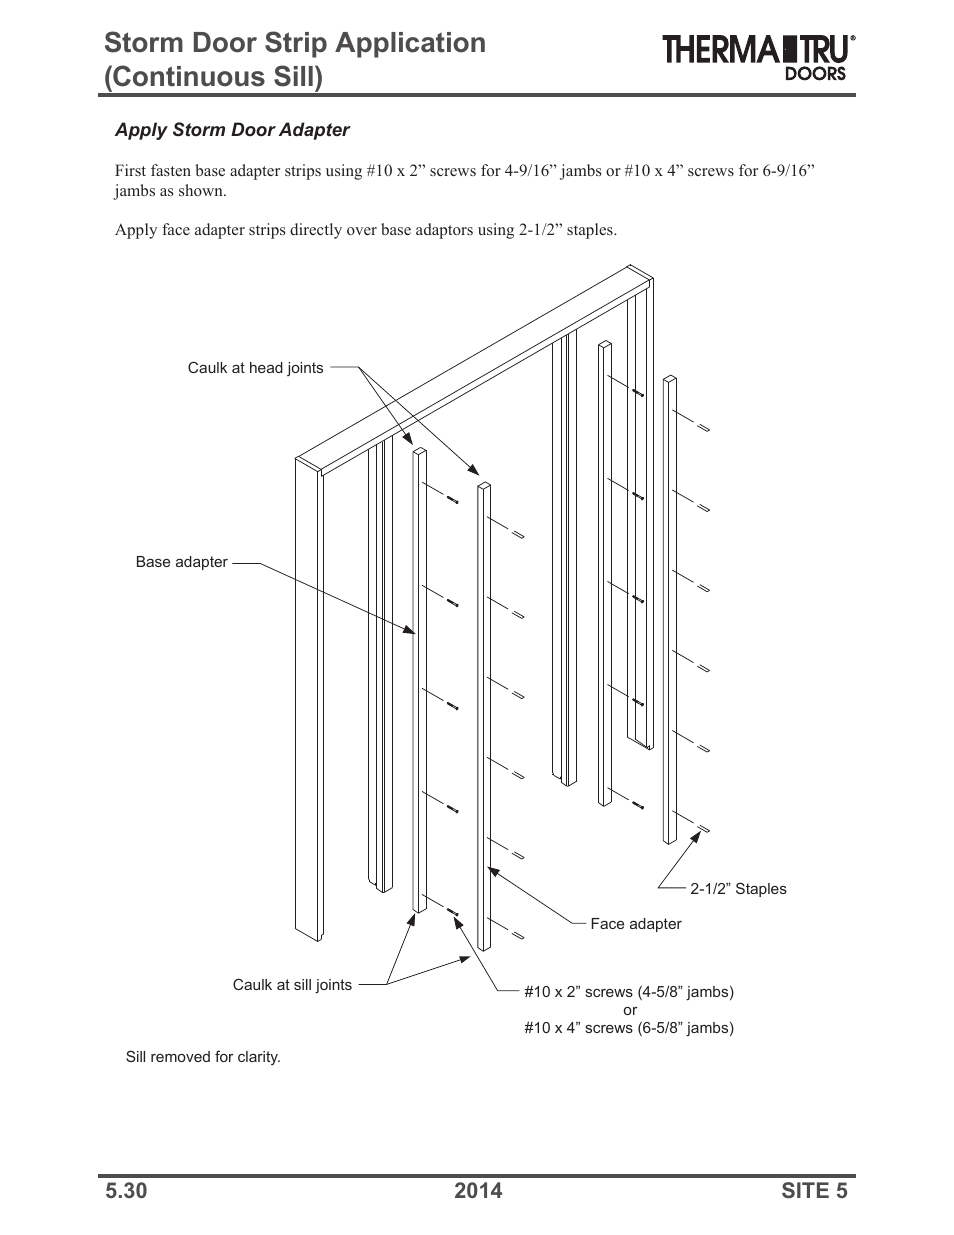 Storm Door Strip Application Continuous Sill Therma